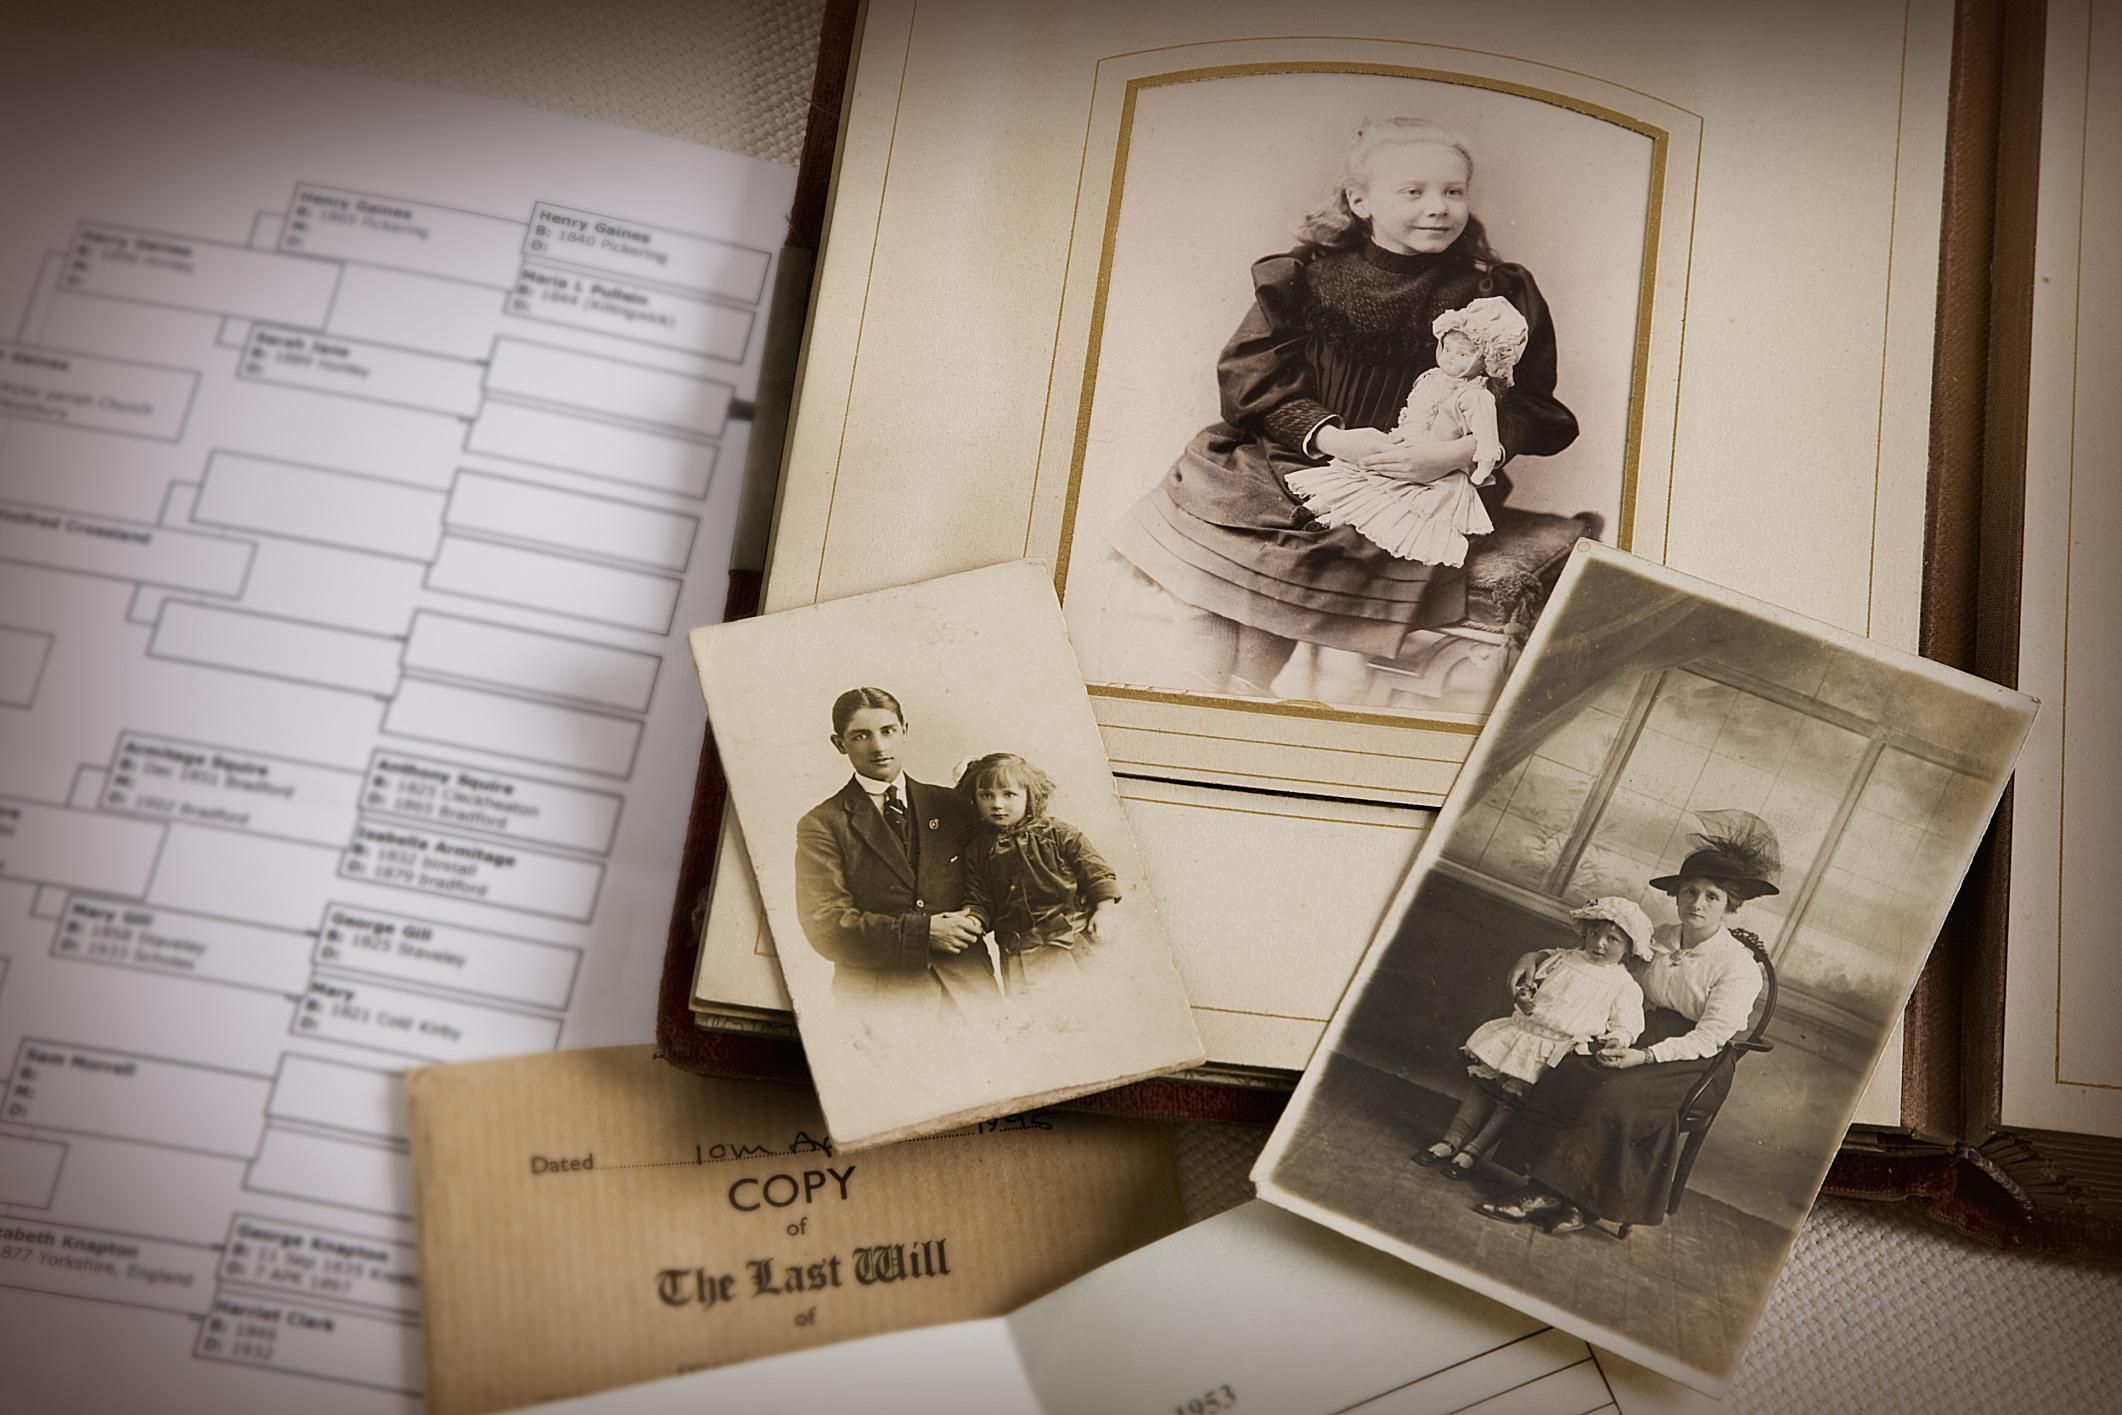 Who do you think you are free family history workshop in balham find out for free how you can build your family tree at the free family history workshop in balham on saturday 29th july publicscrutiny Gallery